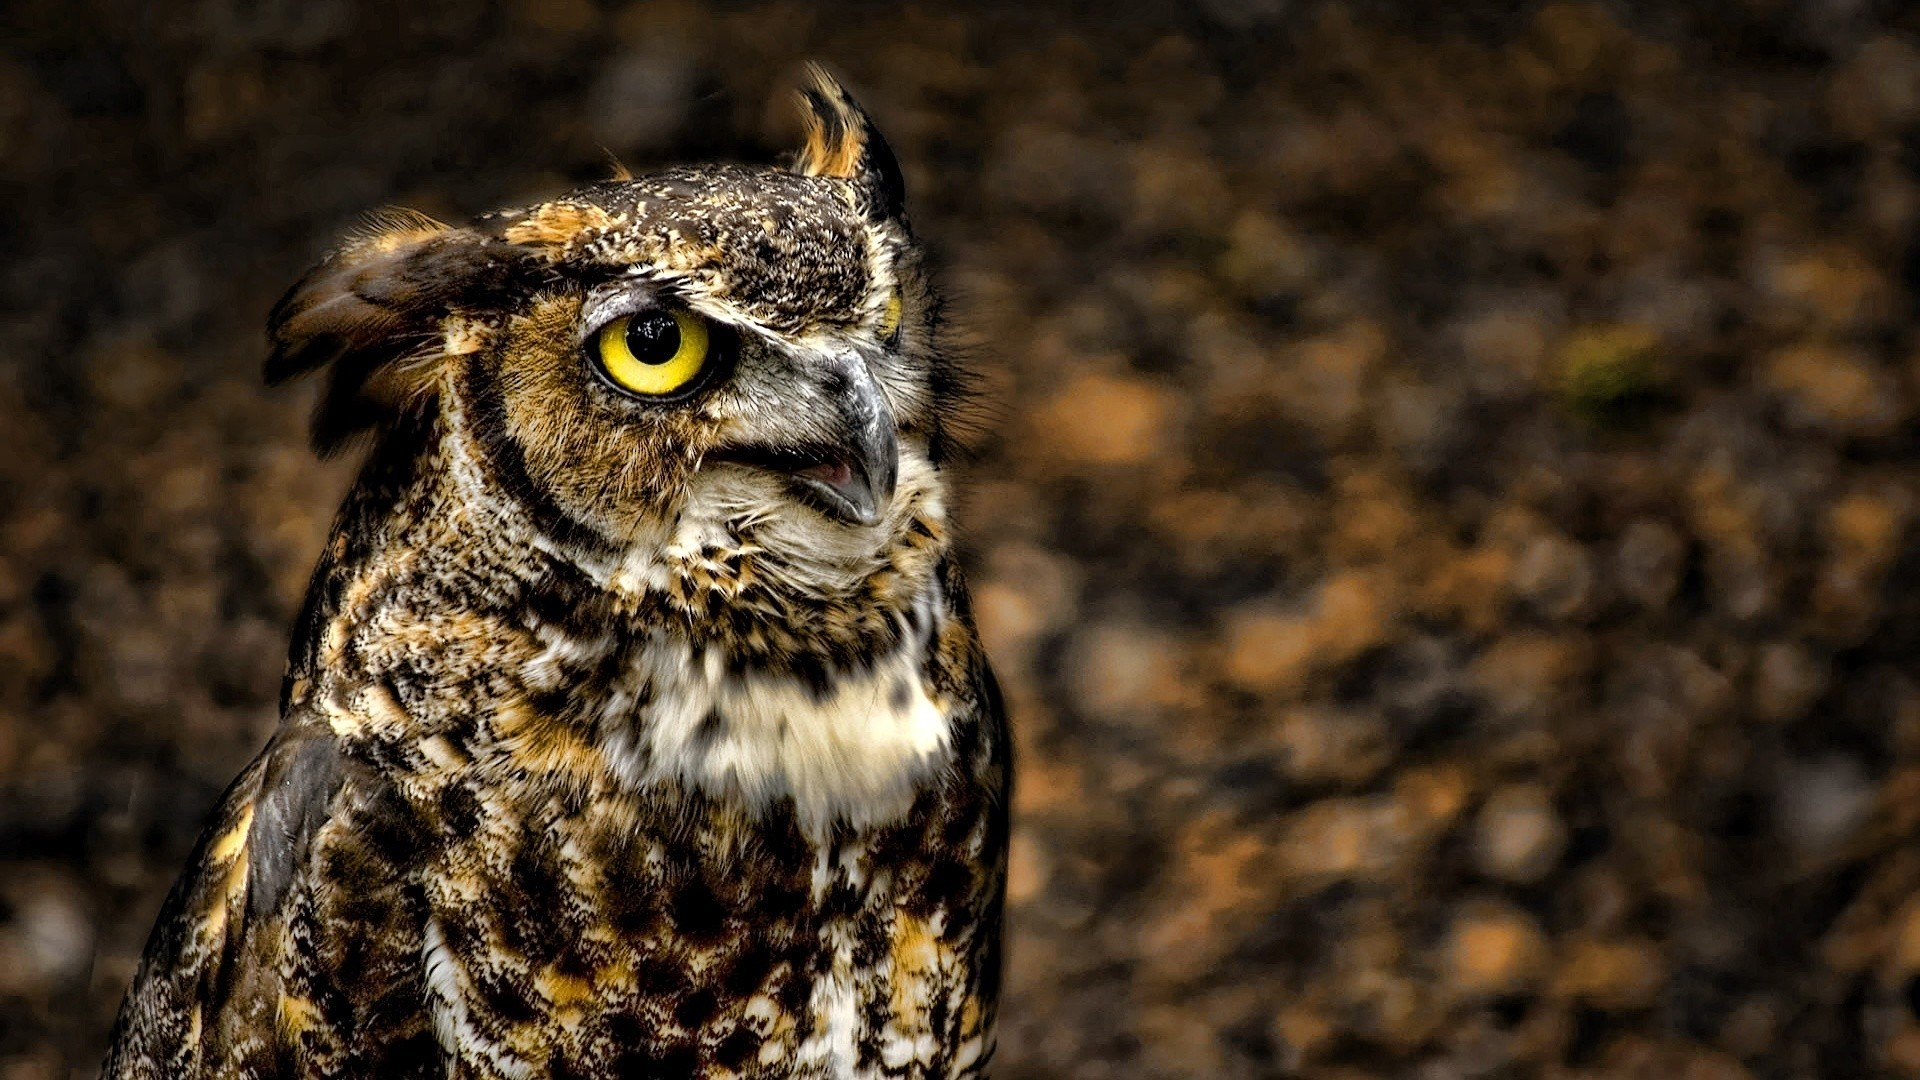 1920x1080 Animal - Great horned owl Wallpaper